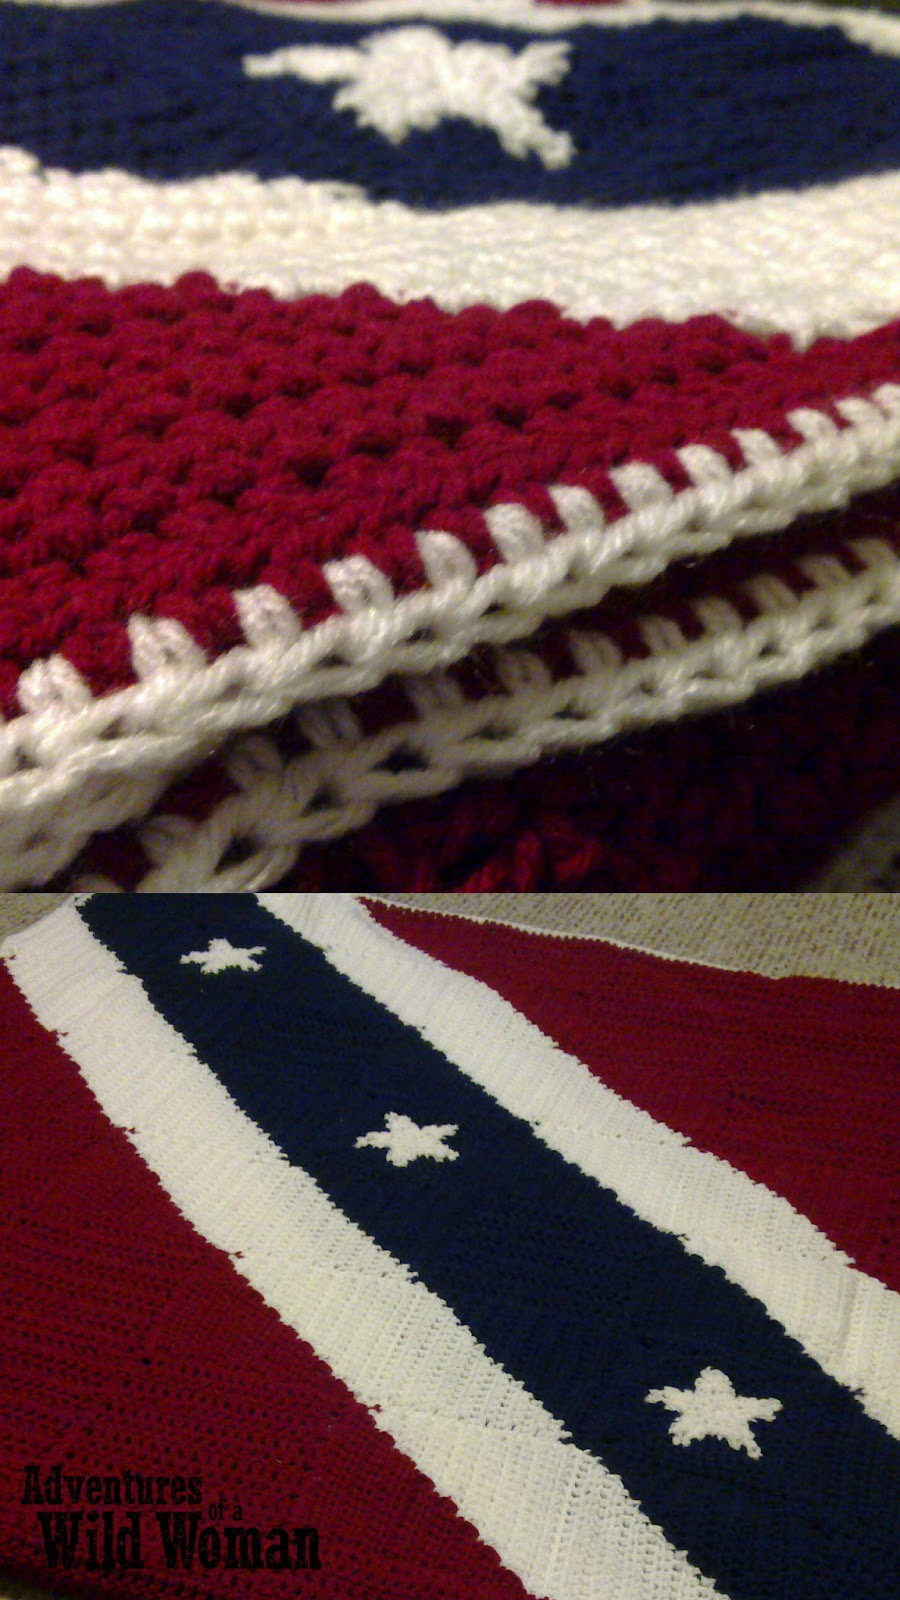 Crochet Patterns Rebel Flag : am really proud of this blanket. Ive only successfully made three ...